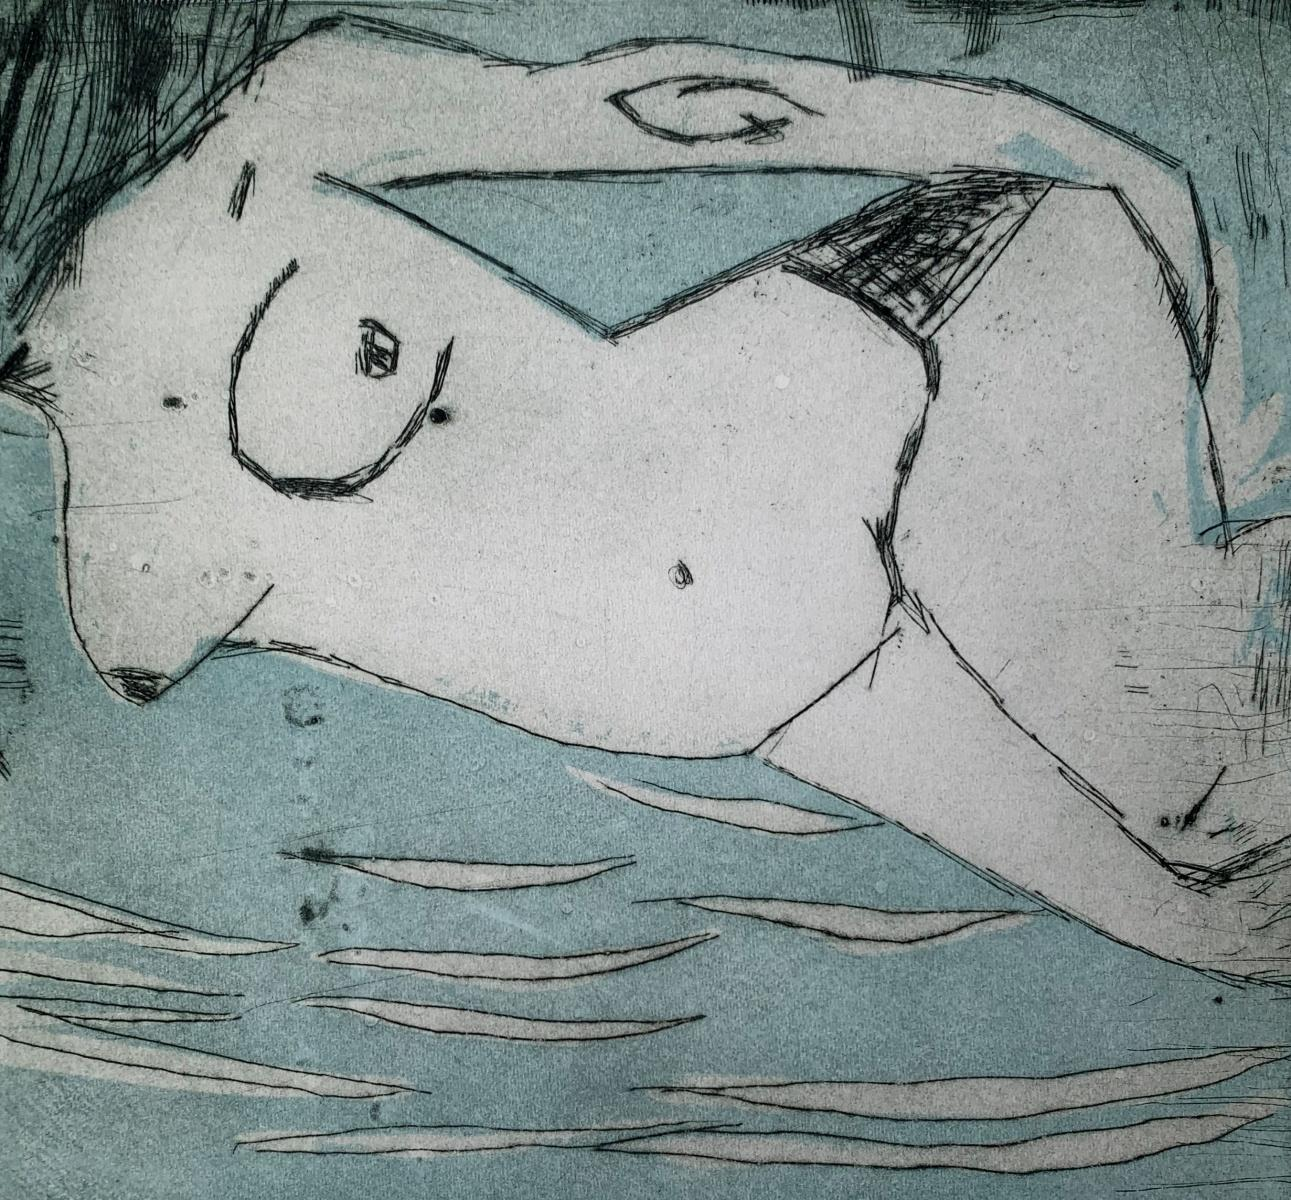 In water 6 - Contemporary Figurative Drypoint Etching Print, Female nude